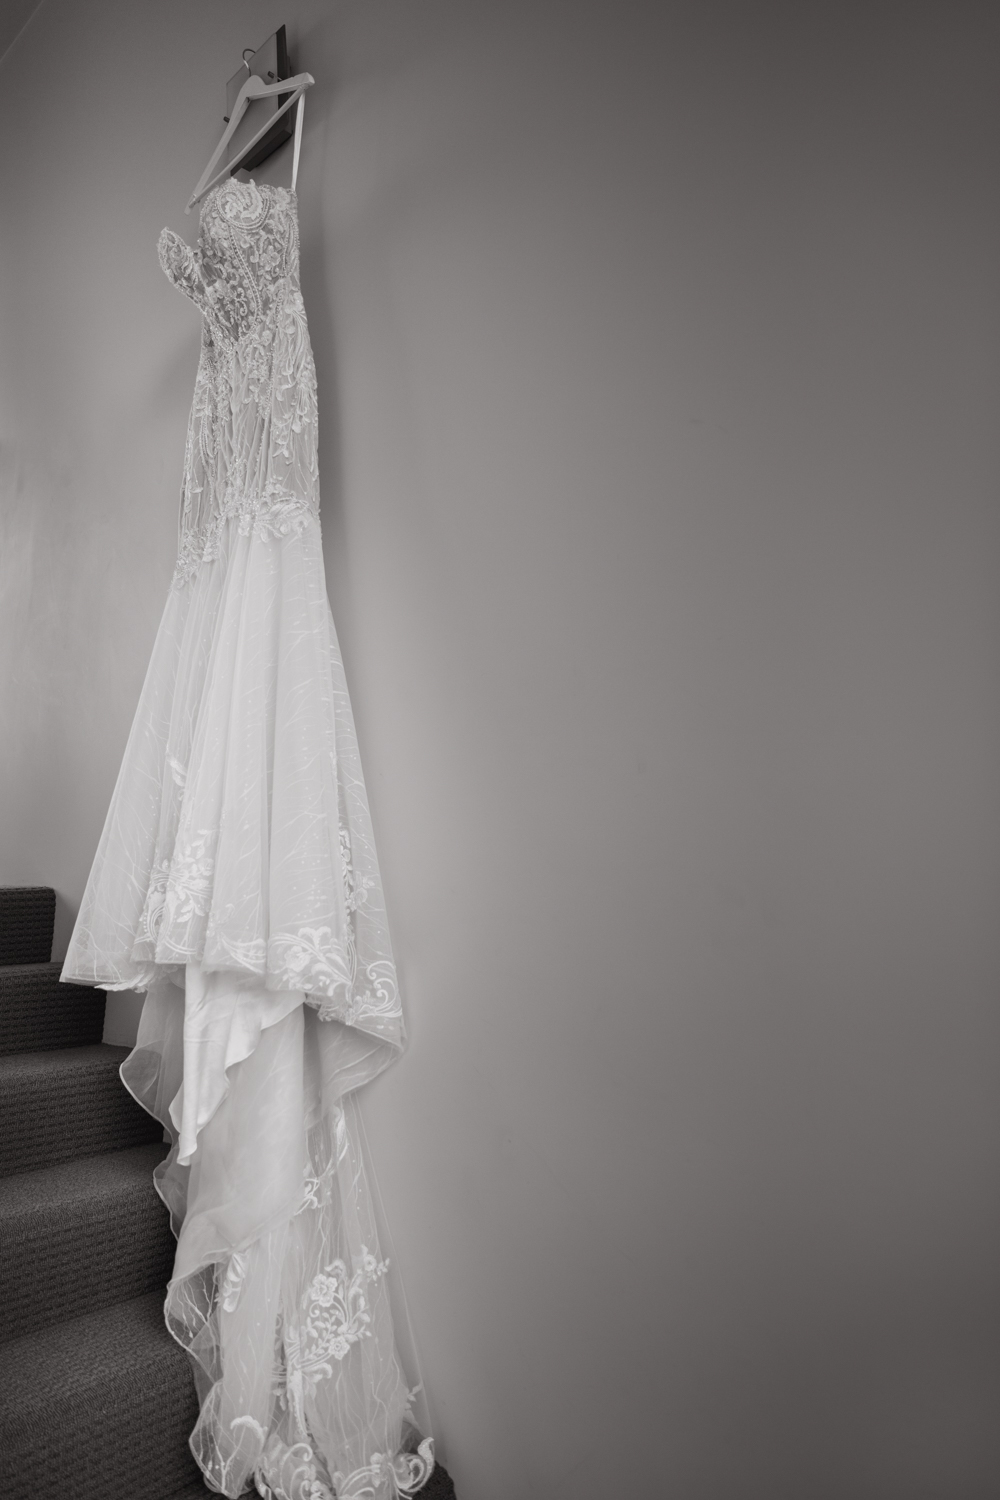 An artistic image of a Bride's dress taken by Mala Photography, an Auckland based wedding photographer. The wedding was at Markovina Vineyard Estate In Kumeu, Auckland.